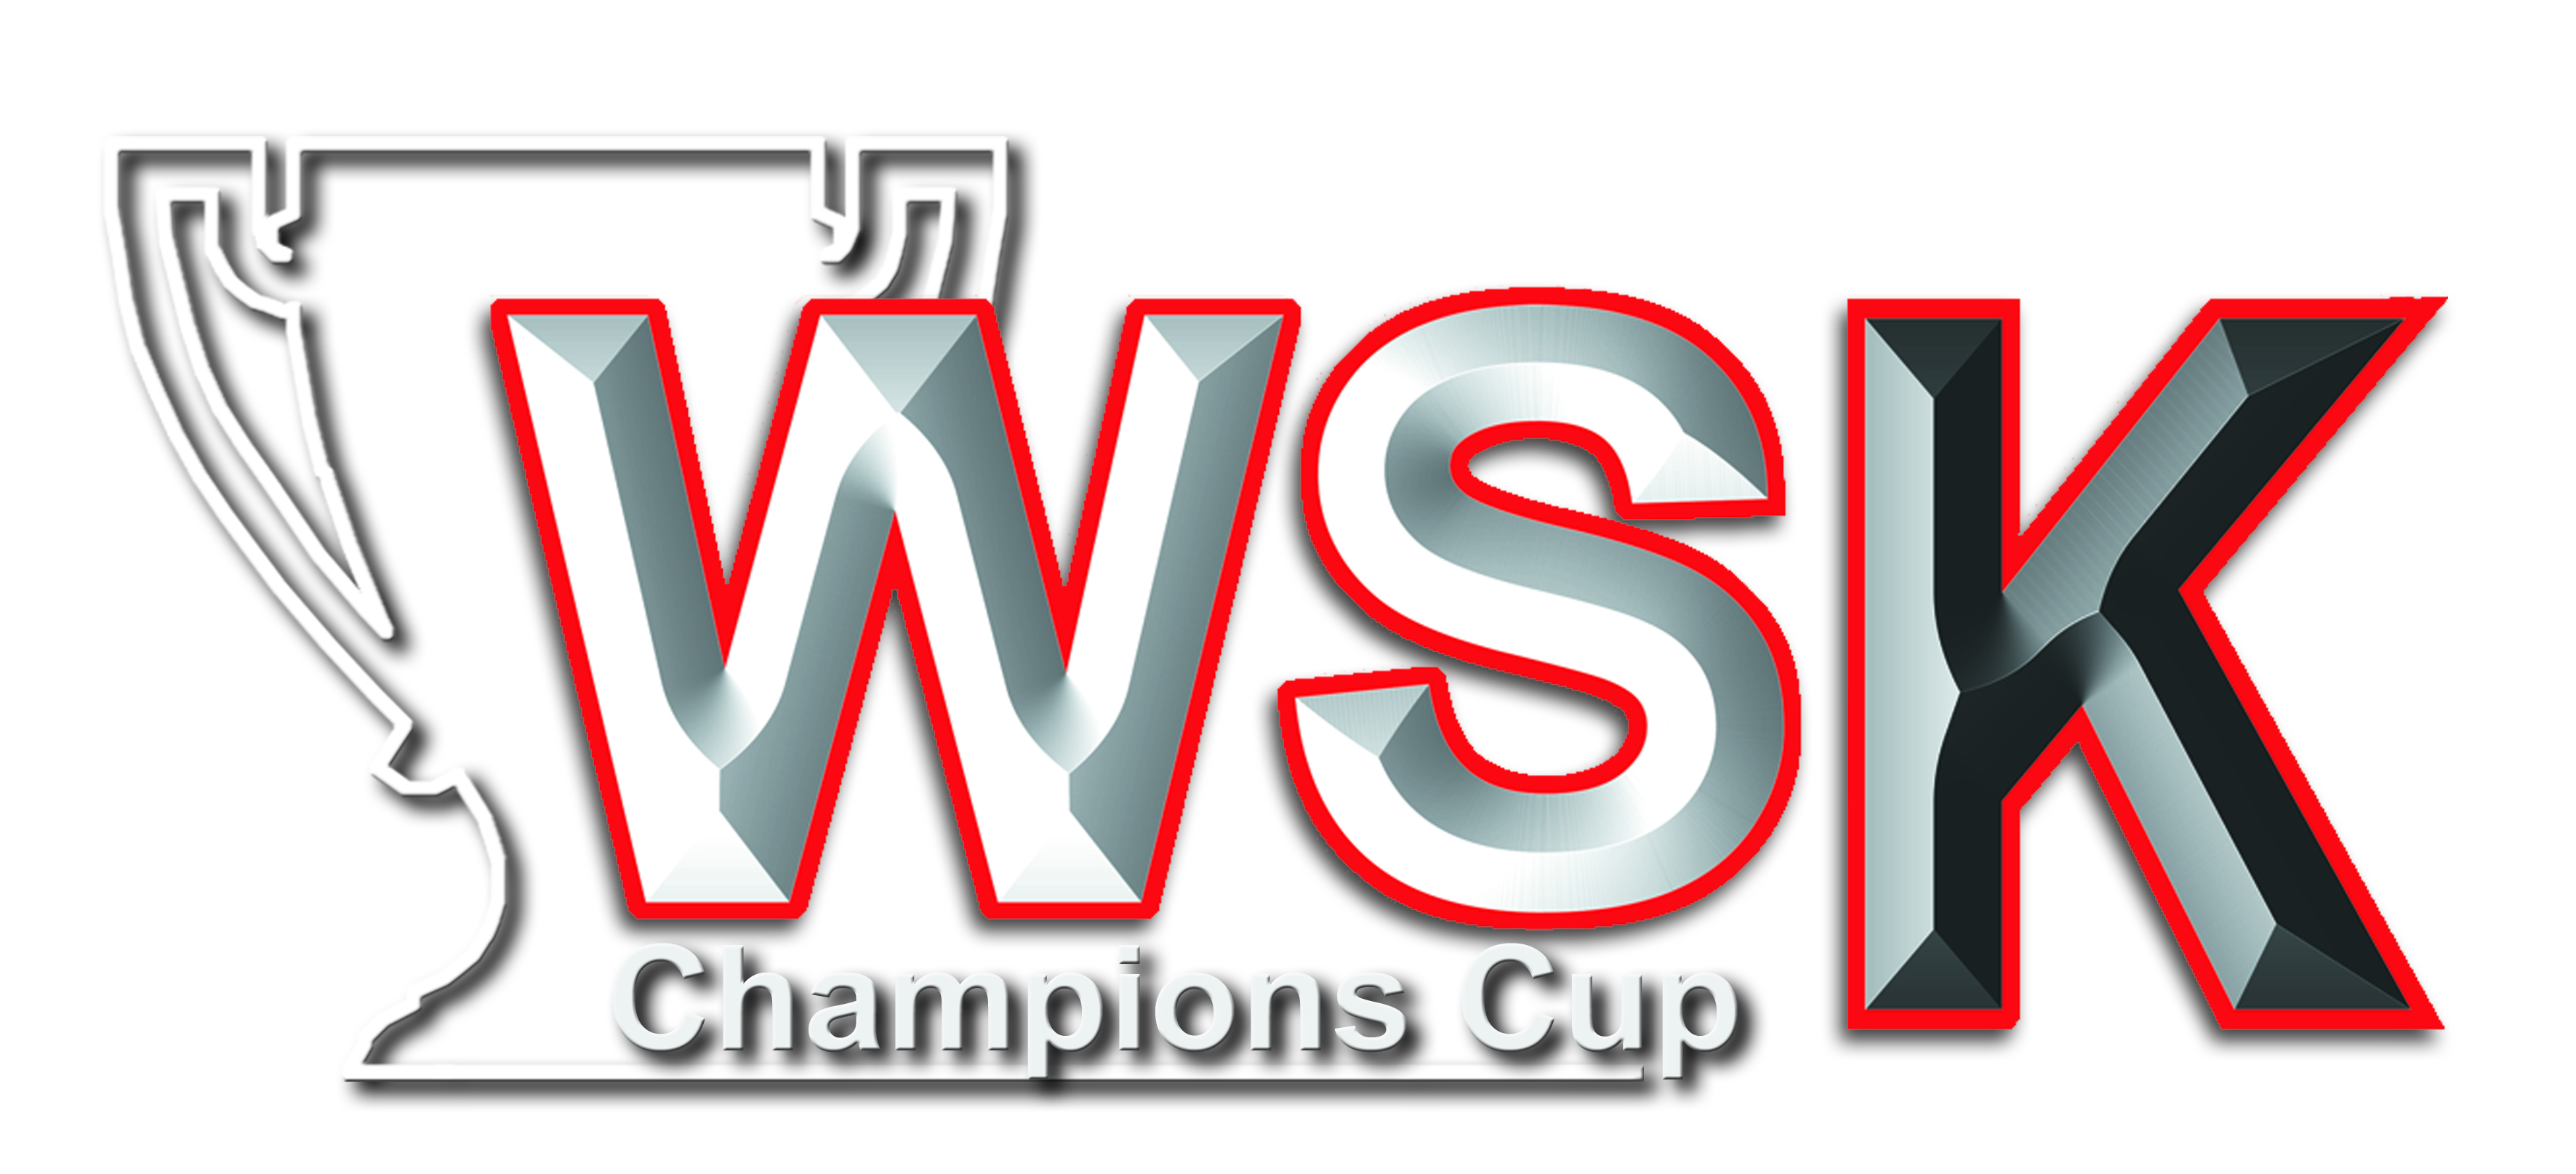 WSK Champions Cup website